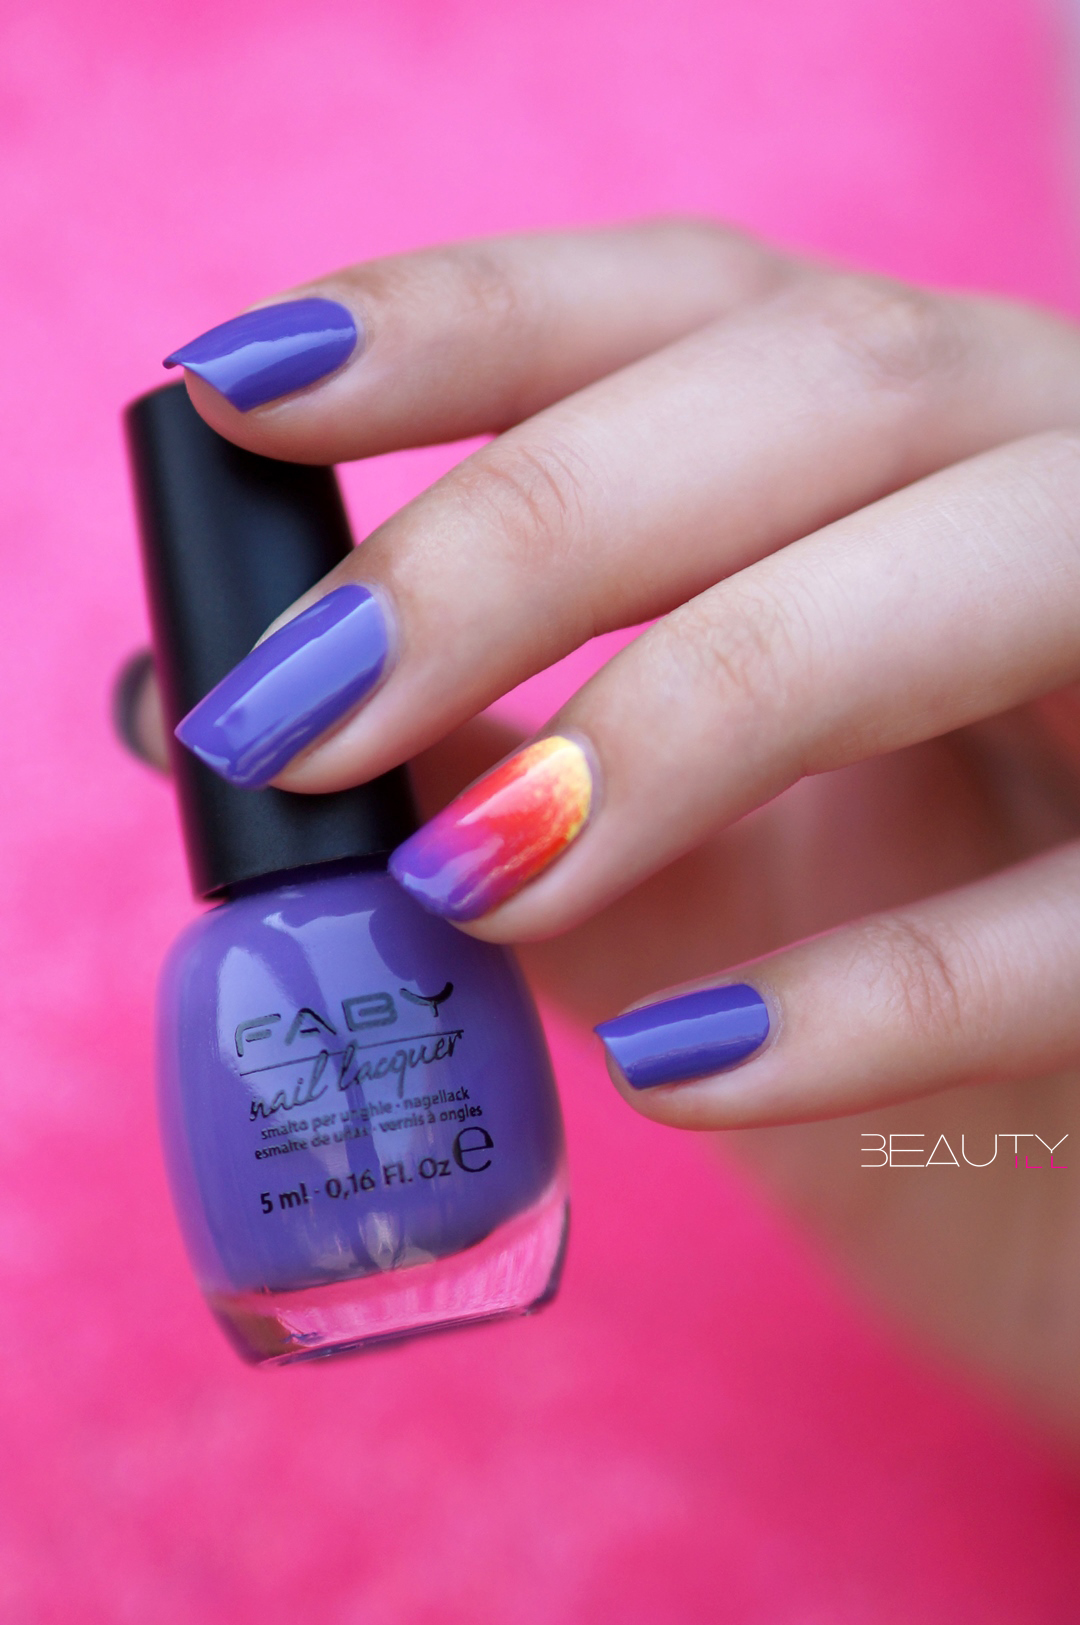 Ombre Nail Art + FABY Music Collection swatches